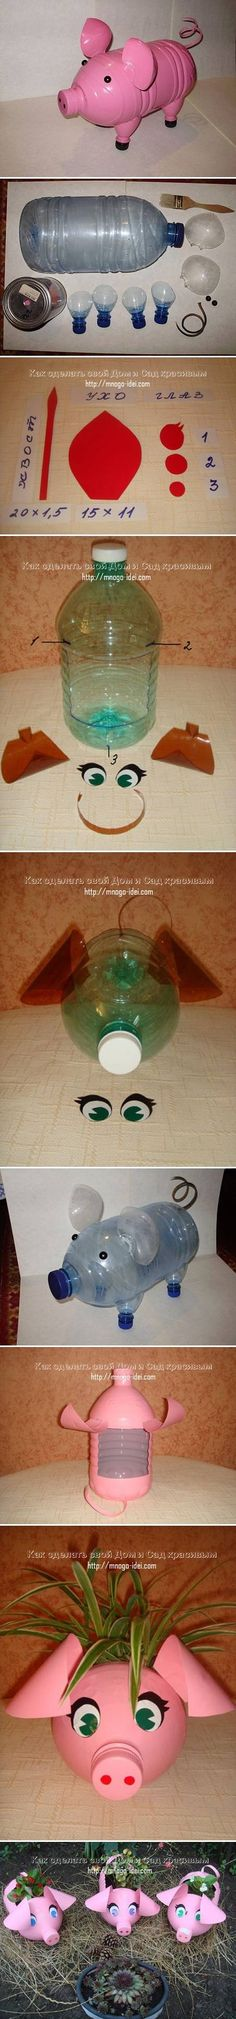 DIY Plastic Bottle Piggy Plant Vase Pictures, Photos, and Images for Facebook, Tumblr, Pinterest, and Twitter